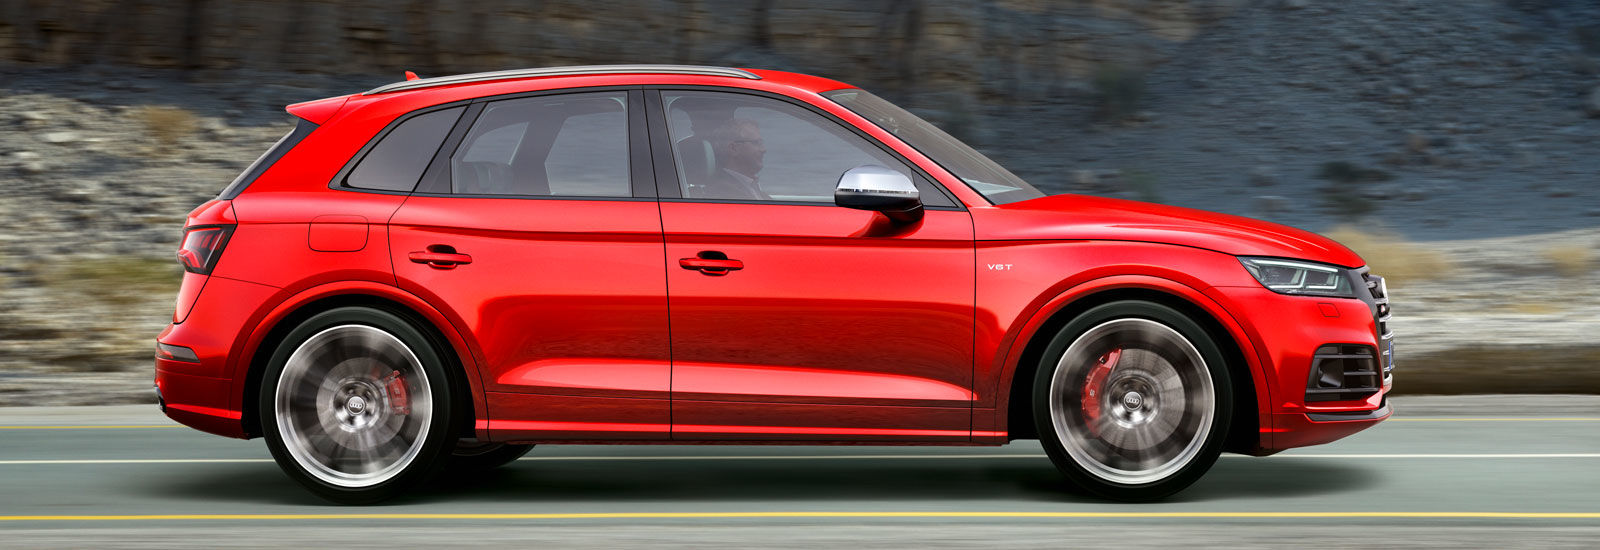 2017 Audi SQ5 price, specs and release date | carwow